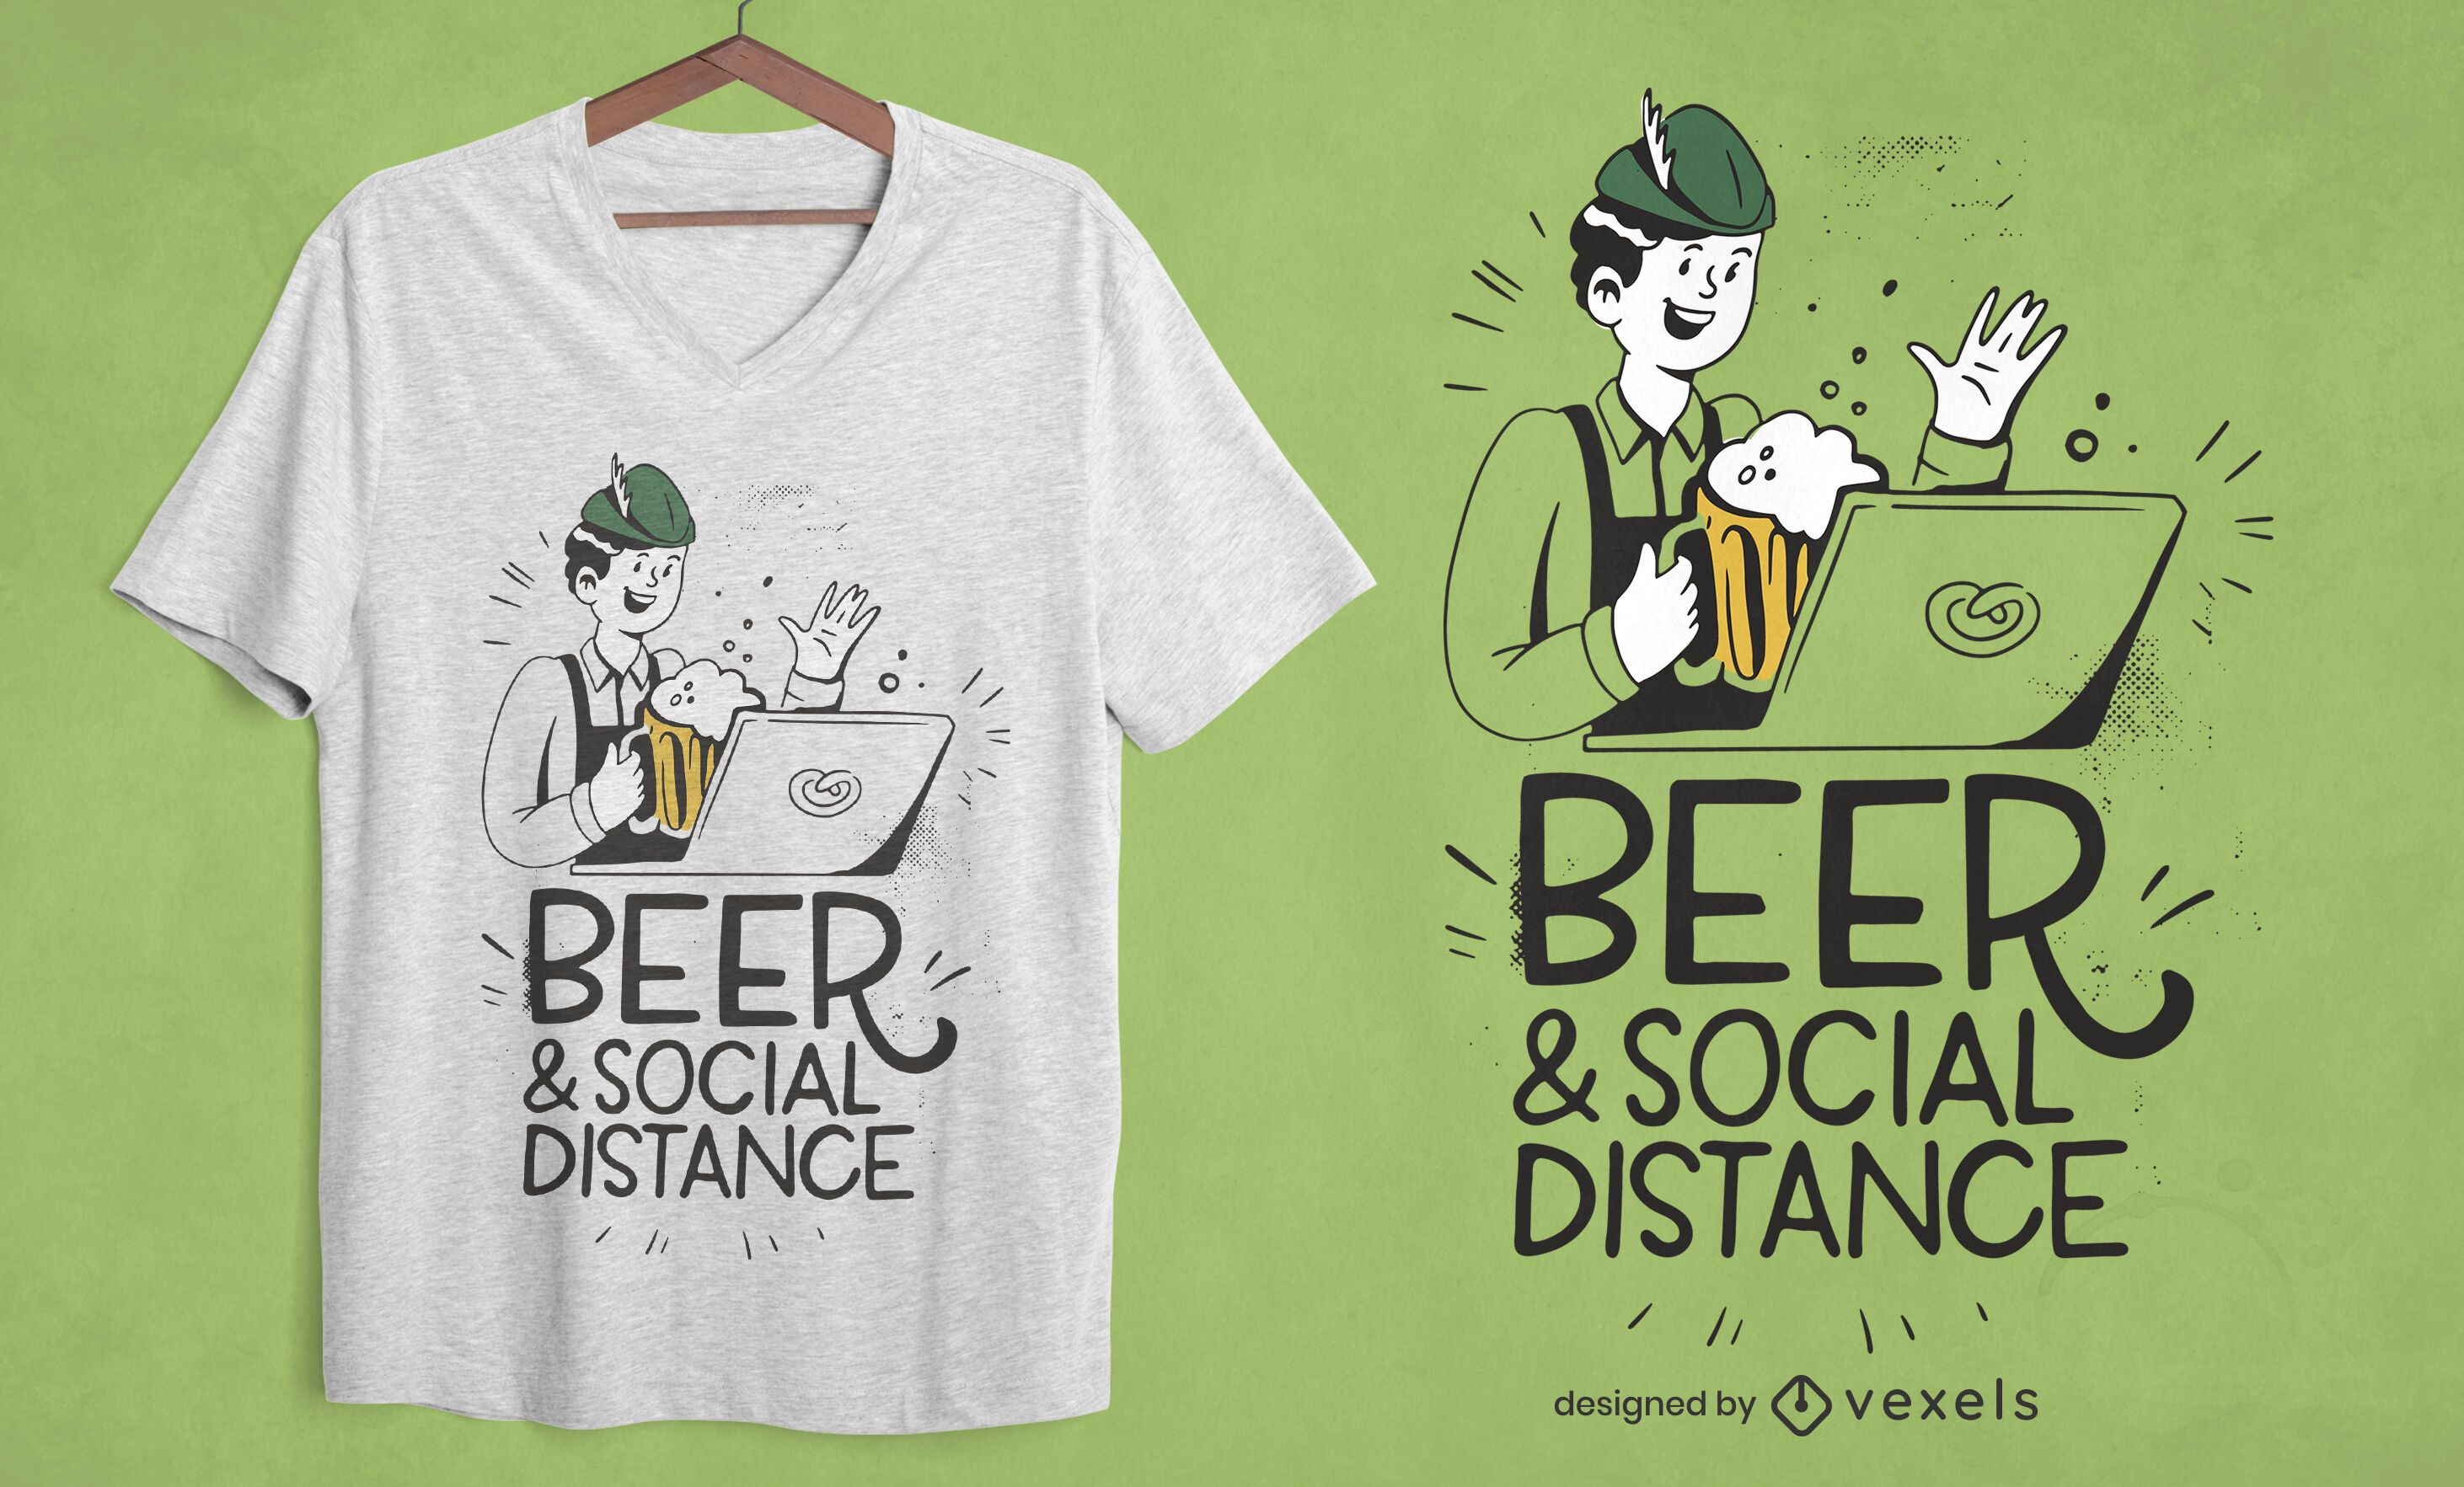 Beer and social distance t-shirt design